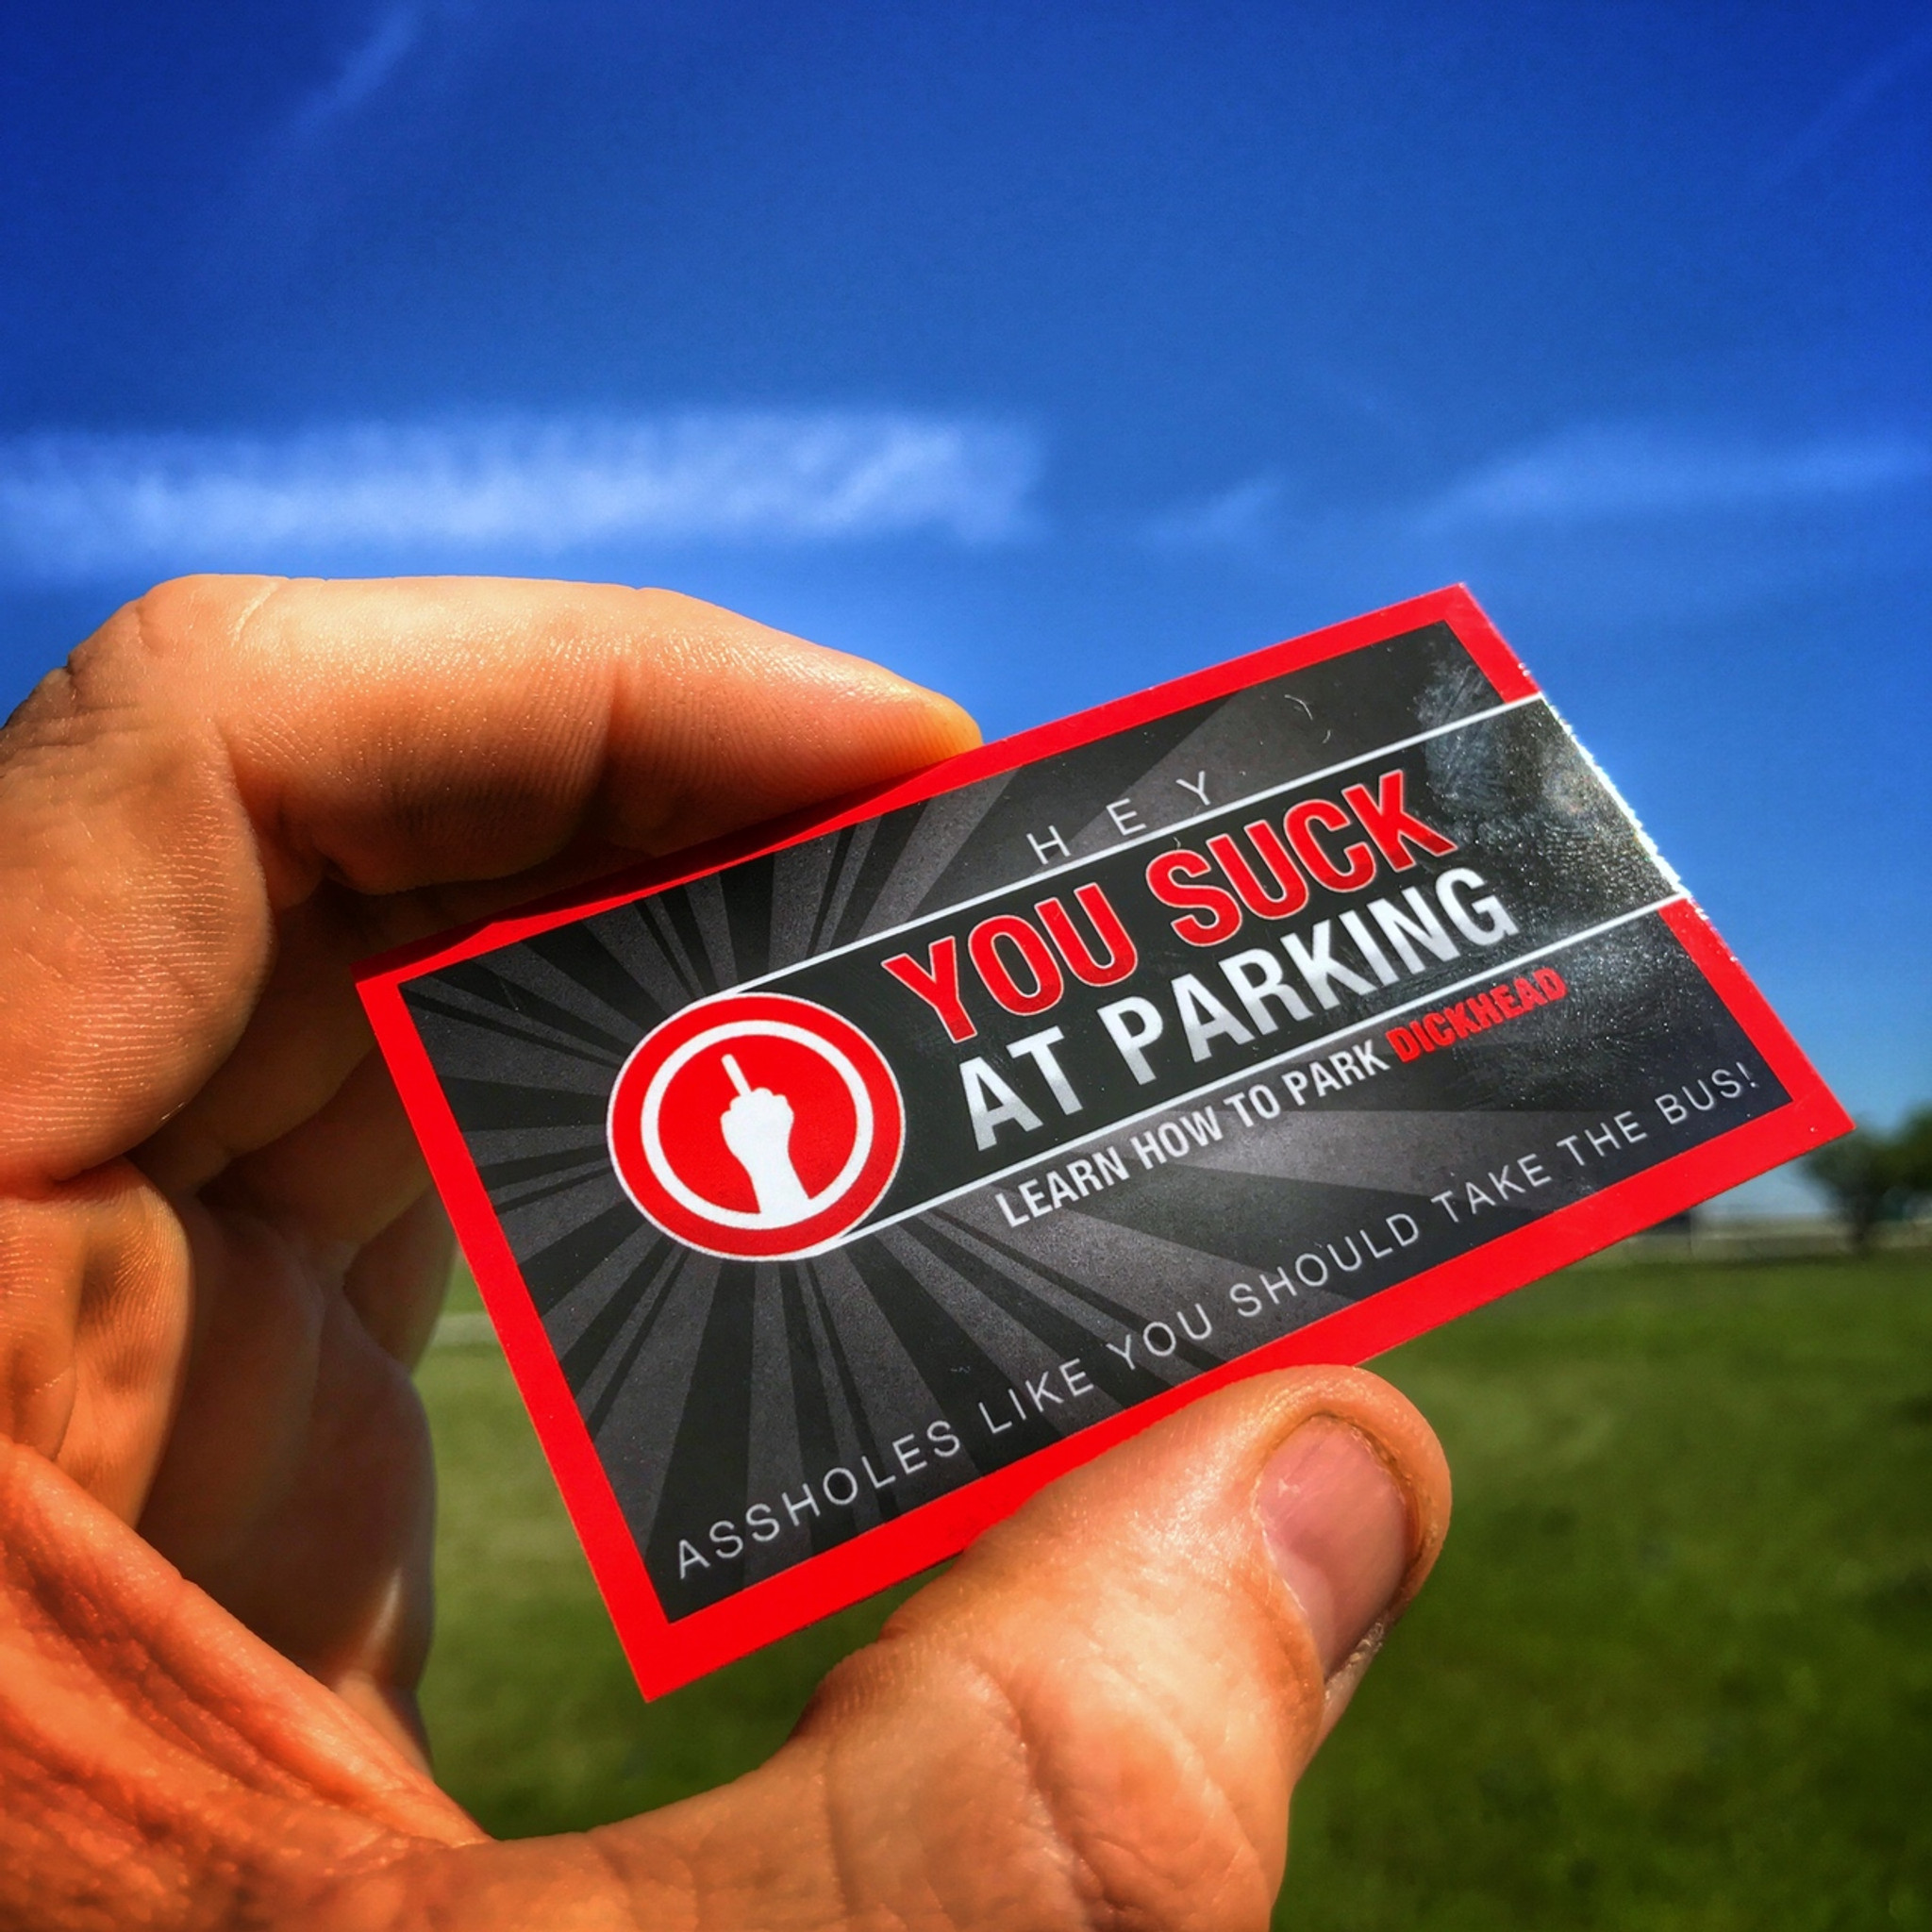 YOU SUCK AT PARKING Business cards (10 pack) red